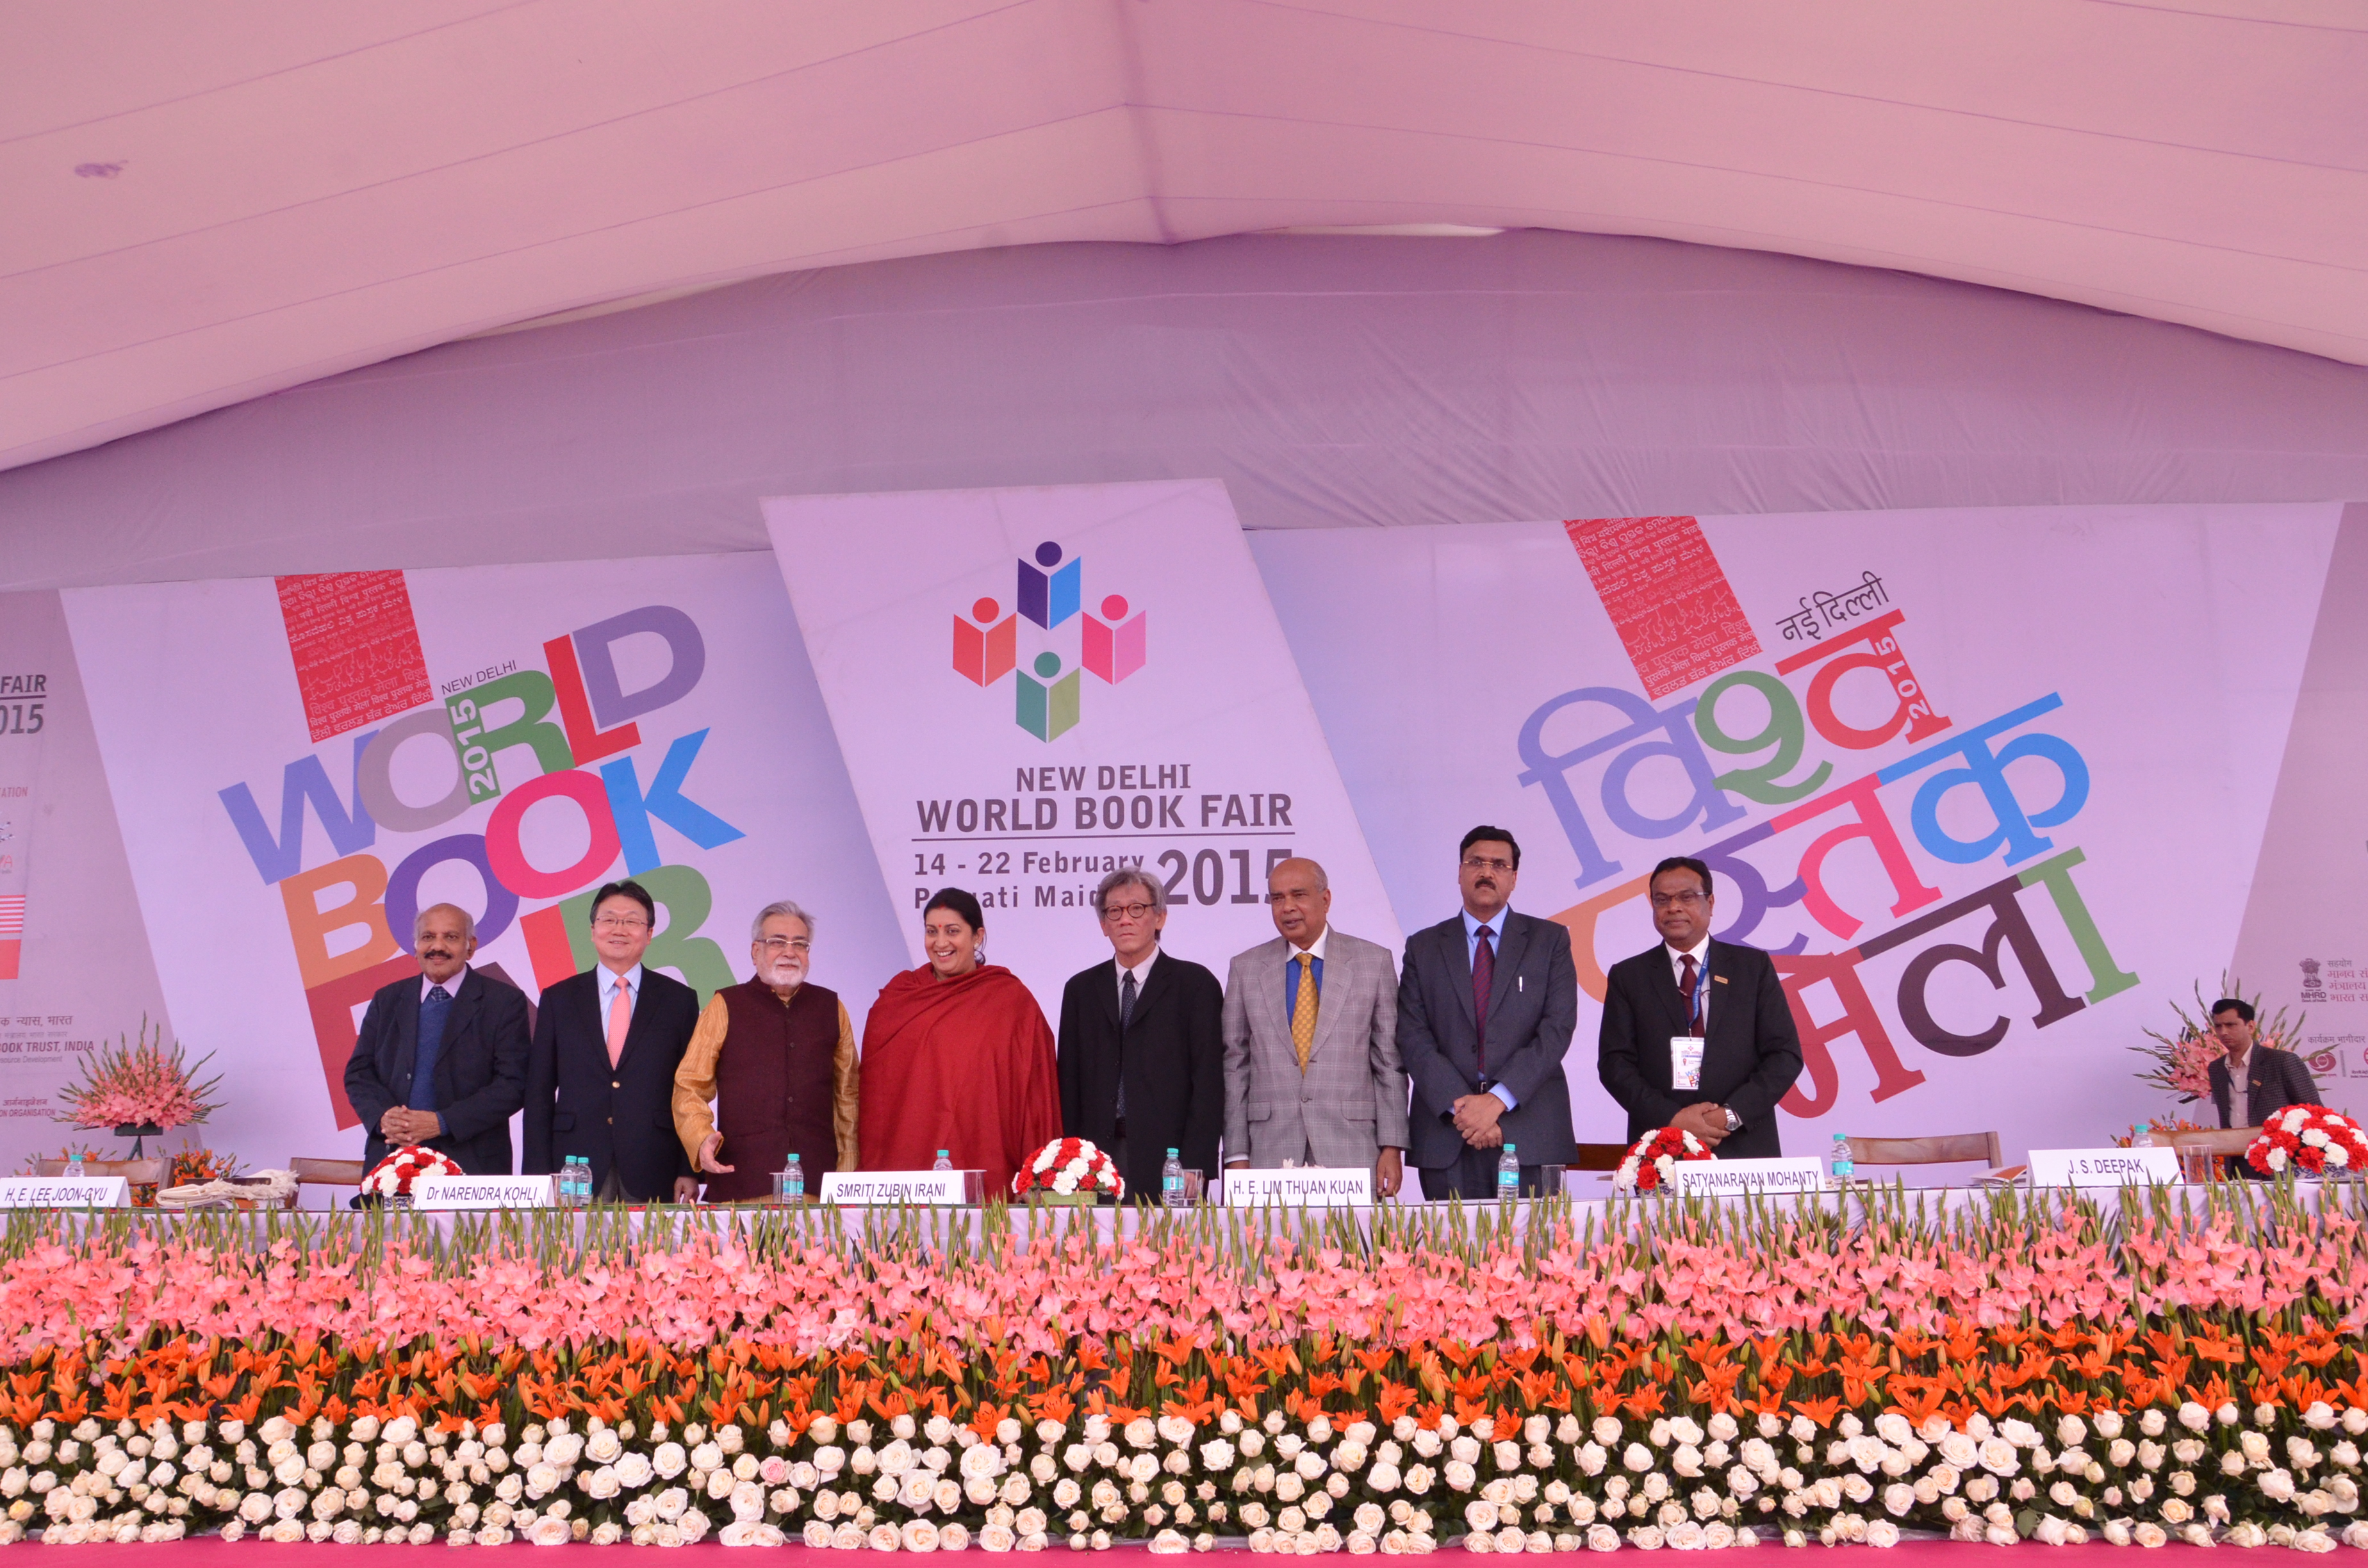 Inauguration of New Delhi World Book Fair 2015